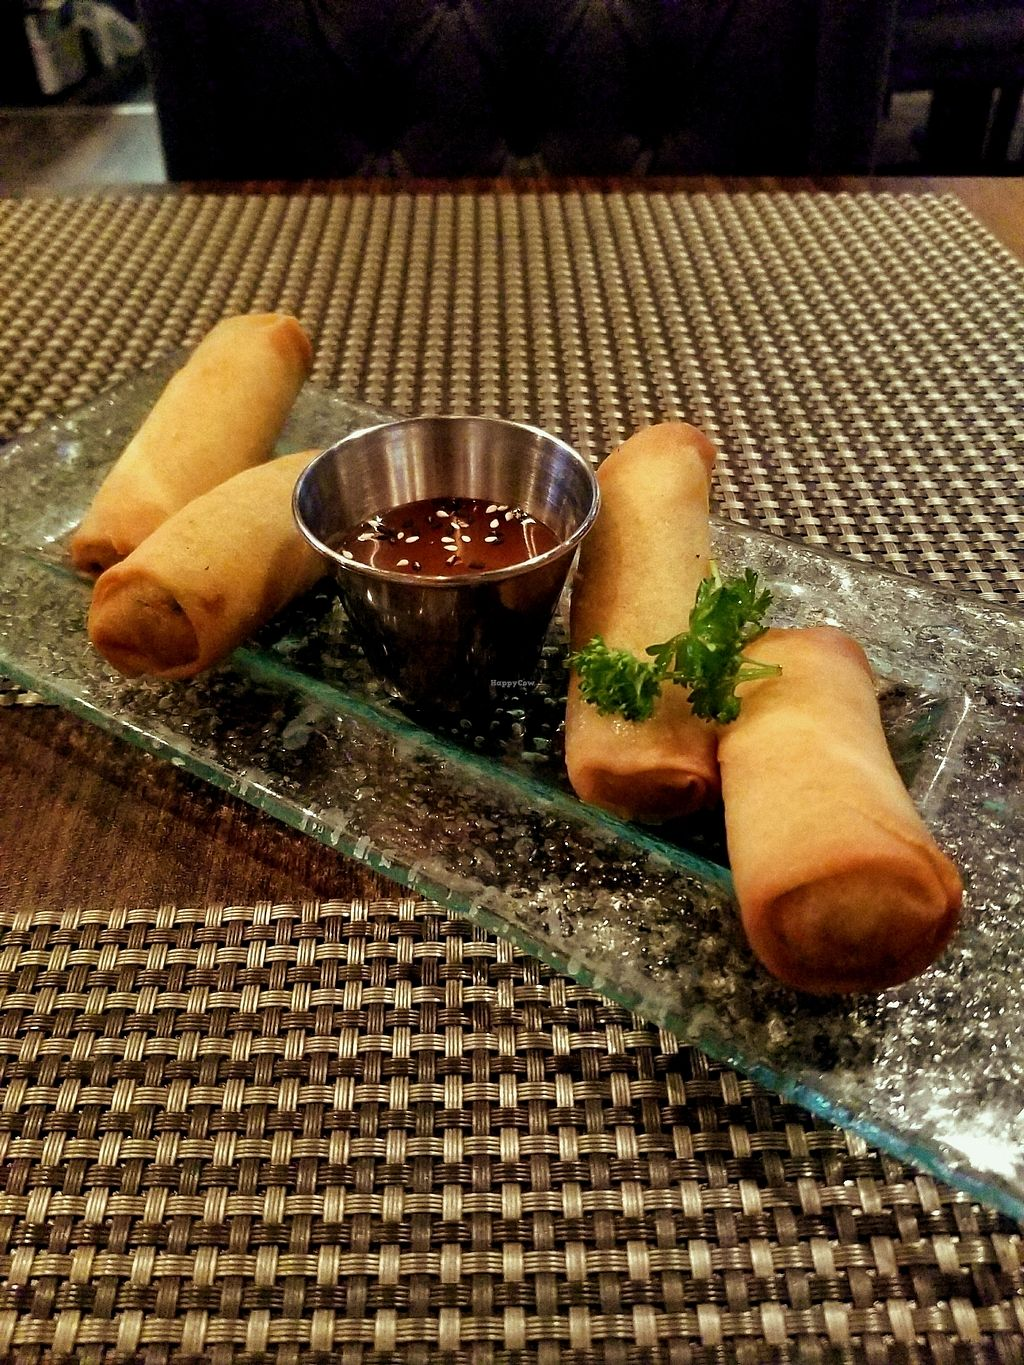 """Photo of Table Thai Bar & Bistro  by <a href=""""/members/profile/KatrinaNabong"""">KatrinaNabong</a> <br/>Crispy Veggie Roll <br/> February 17, 2018  - <a href='/contact/abuse/image/60456/360234'>Report</a>"""